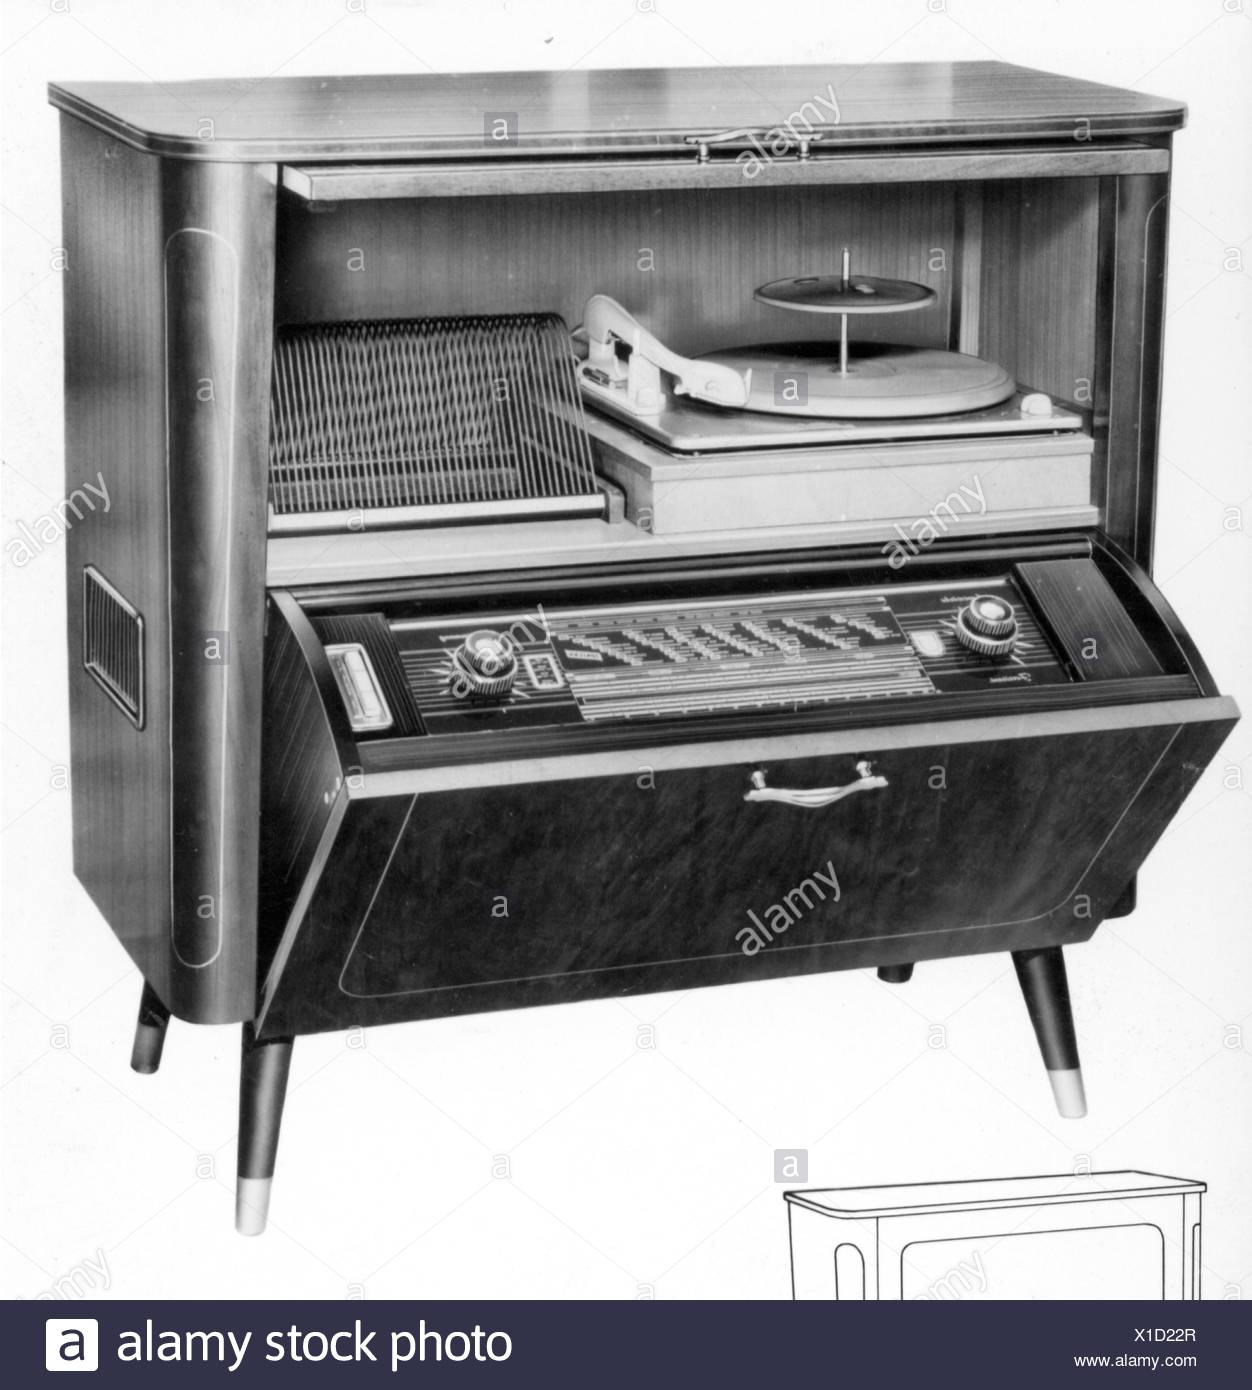 technics, consumer electronics, radiogram W656, Tonfunk GmbH, Karlsruhe, 1956, W 656, W-656, electric appliance, electrical device, electric appliances, electrical devices, radio, radios, radio reception, receiver, receivers, record players, record player, record, records, record rack, record racks, records rack, music, radiogramophone, cabinet, furniture, furnishings, furnishing, technology, technologies, Baden-Wuerttemberg, Baden Wuerttemberg, Wuertemberg, Baden-Wurtemberg, Wurtemberg, Wurttemberg, Baden-Wuertemberg, Baden-Württemberg, Württemberg, industry, , Additional-Rights-Clearences-NA - Stock Image